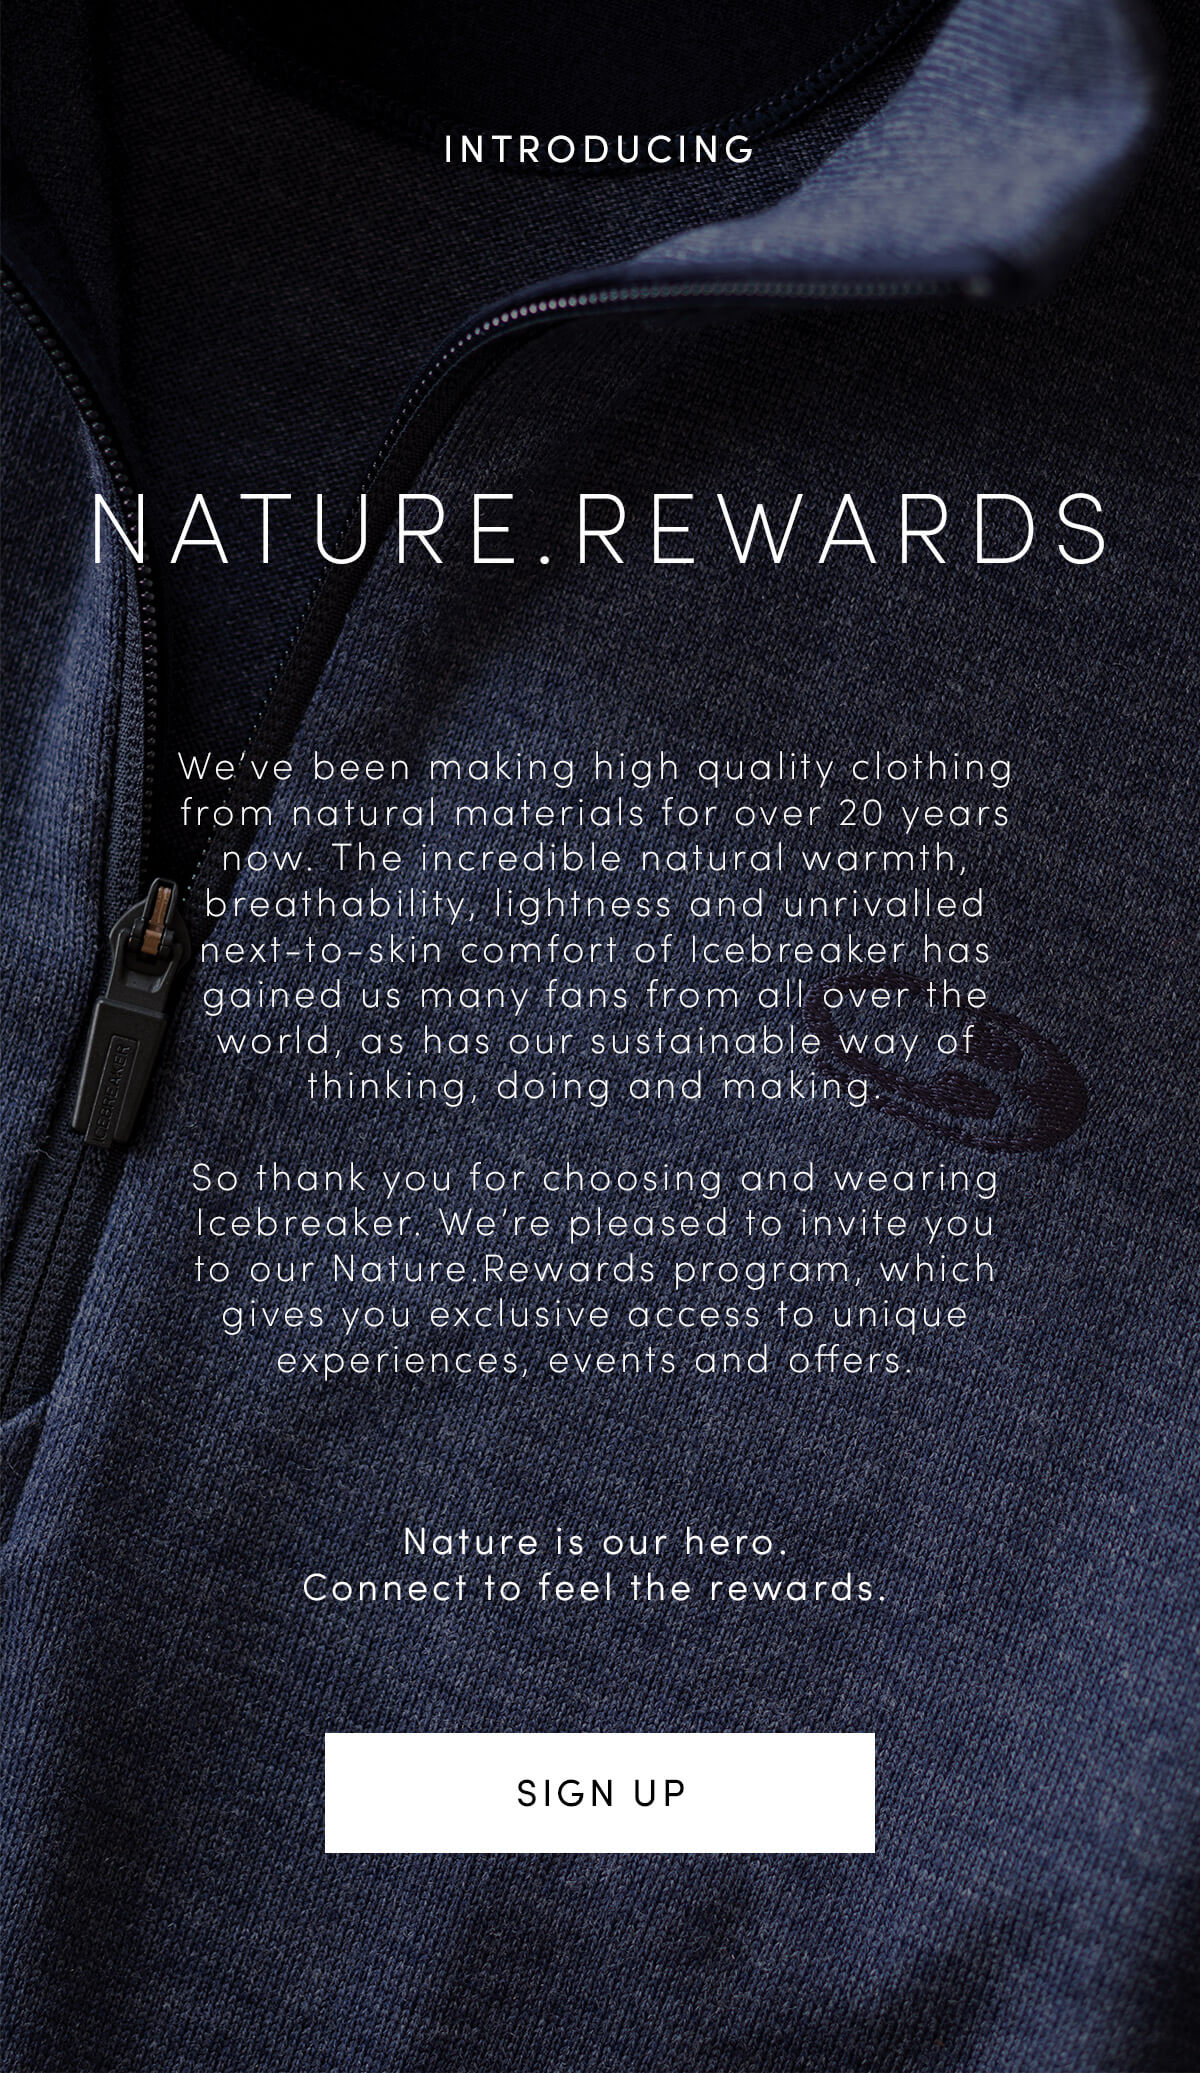 f55f73aedd1 Icebreaker: Introducing our new loyalty program: Nature.Rewards | Milled